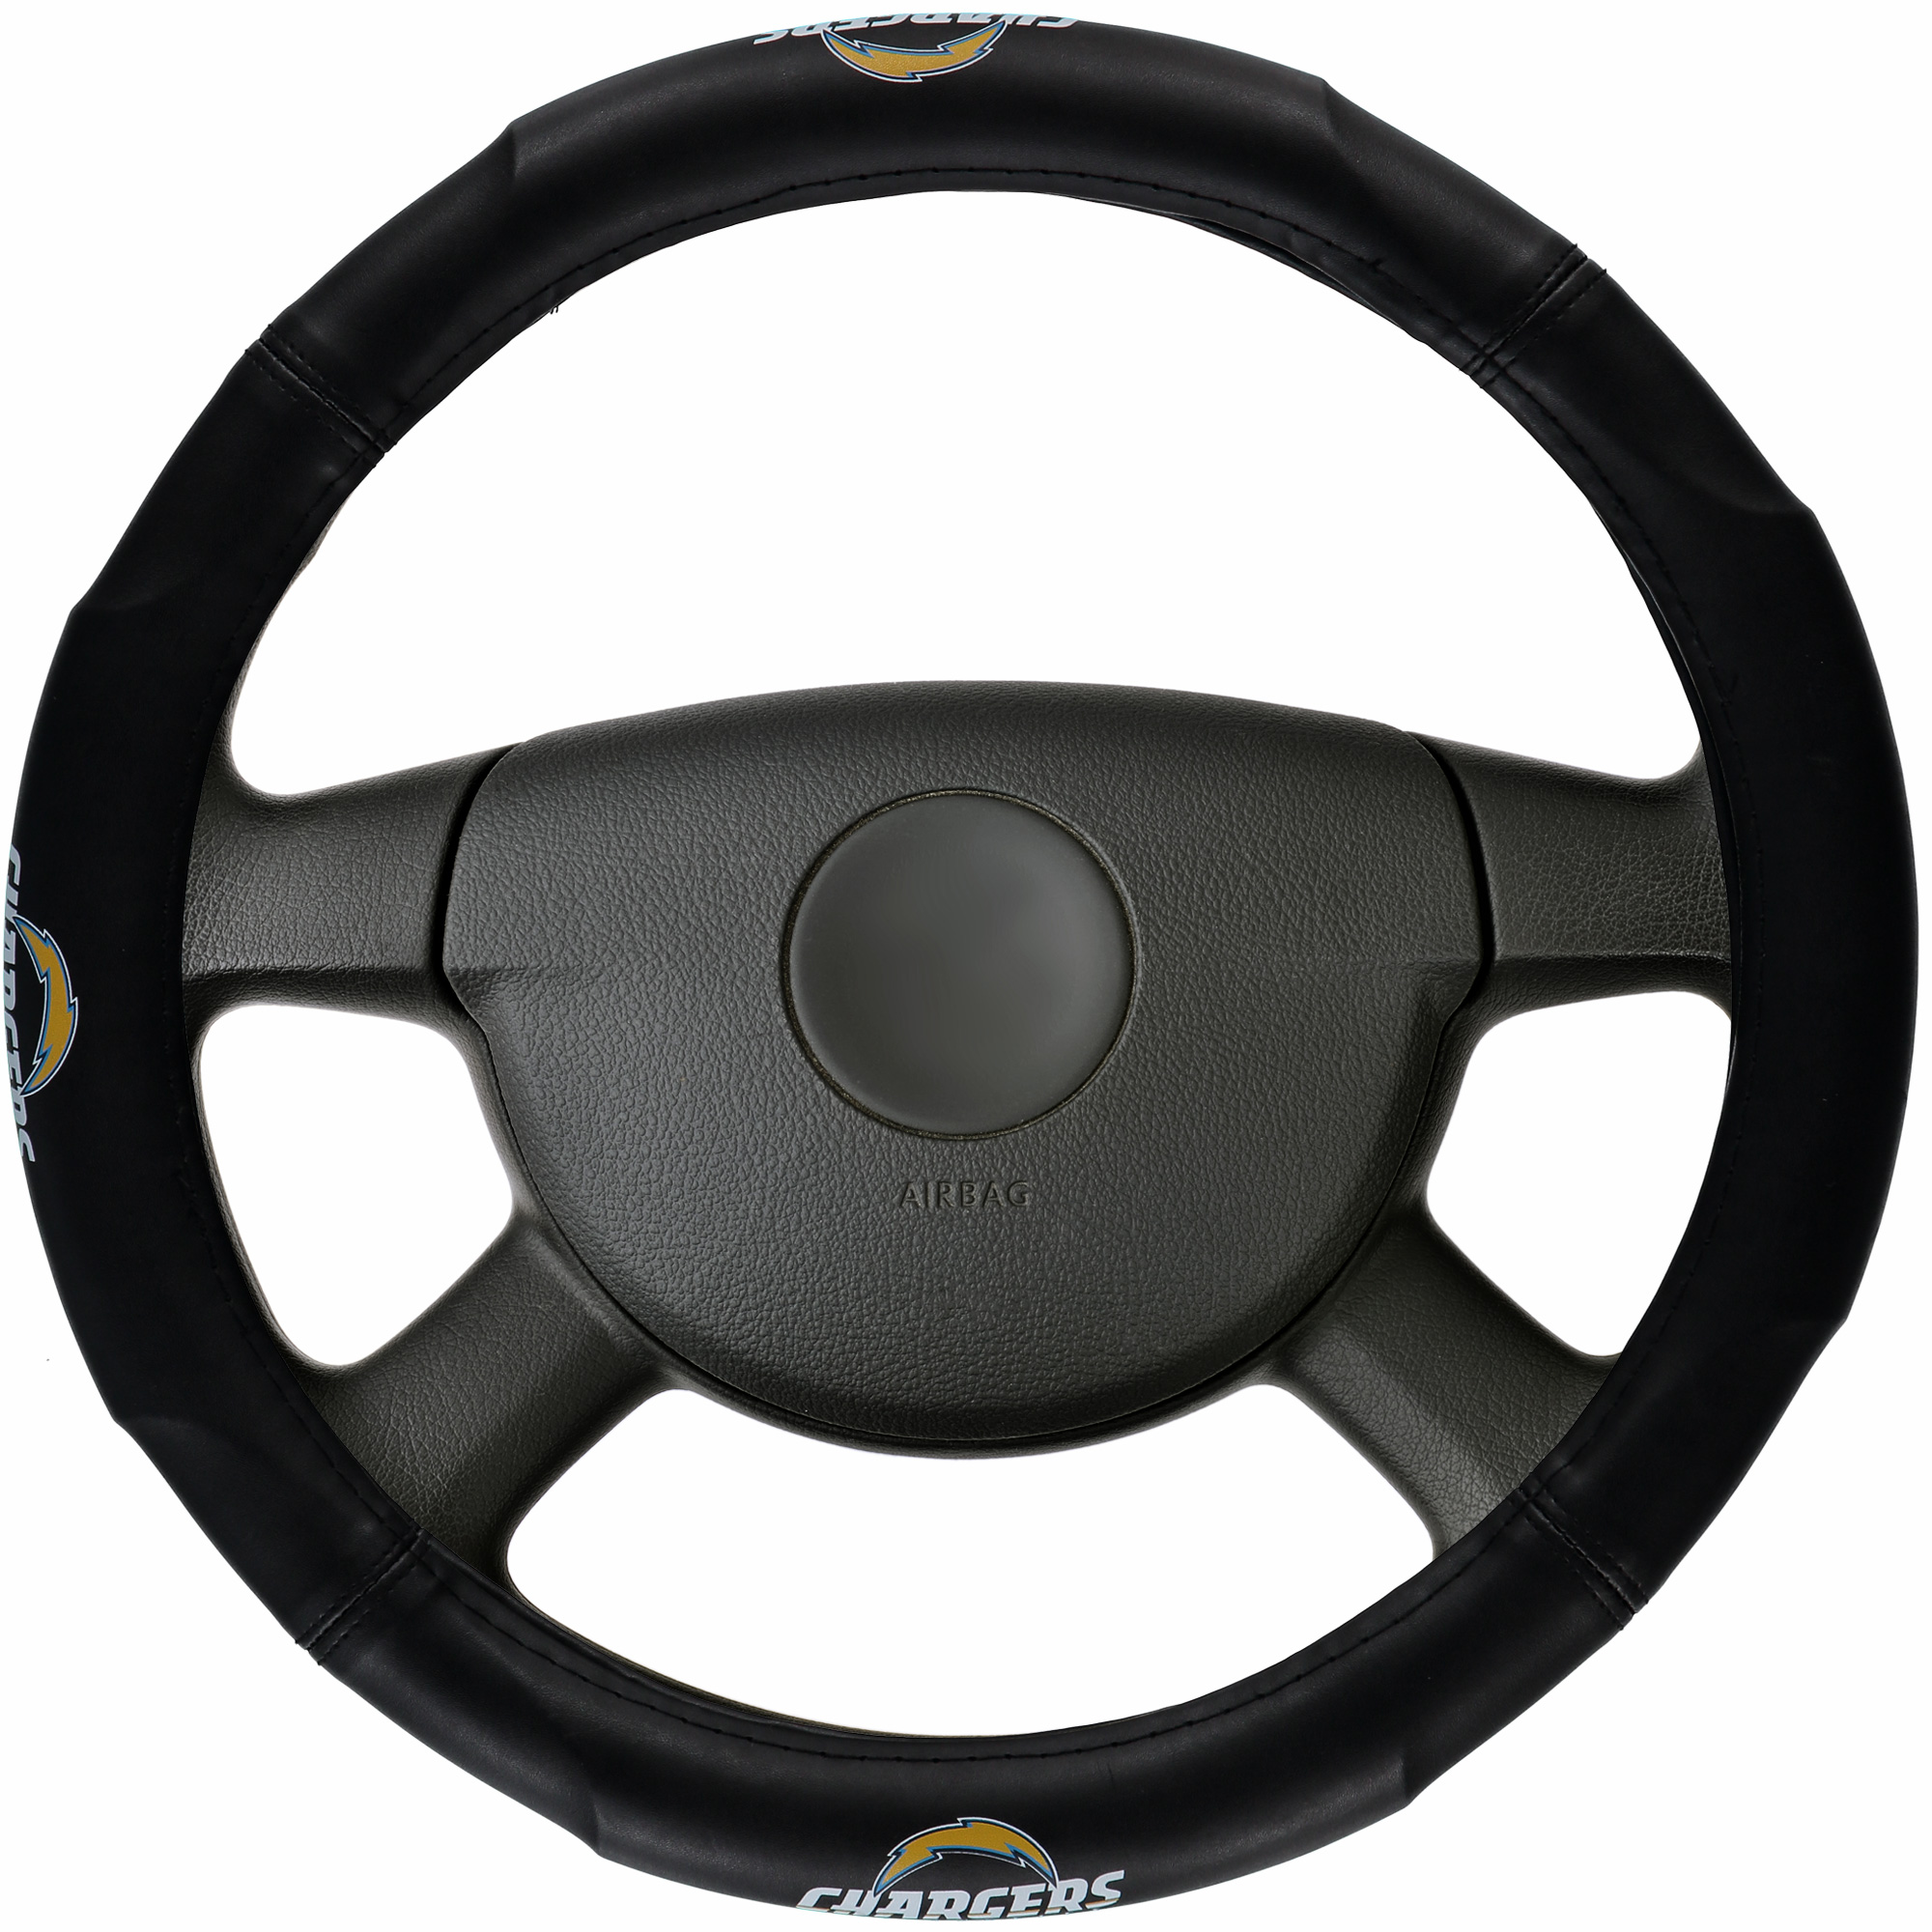 Los Angeles Chargers Steering Wheel Cover - No Size